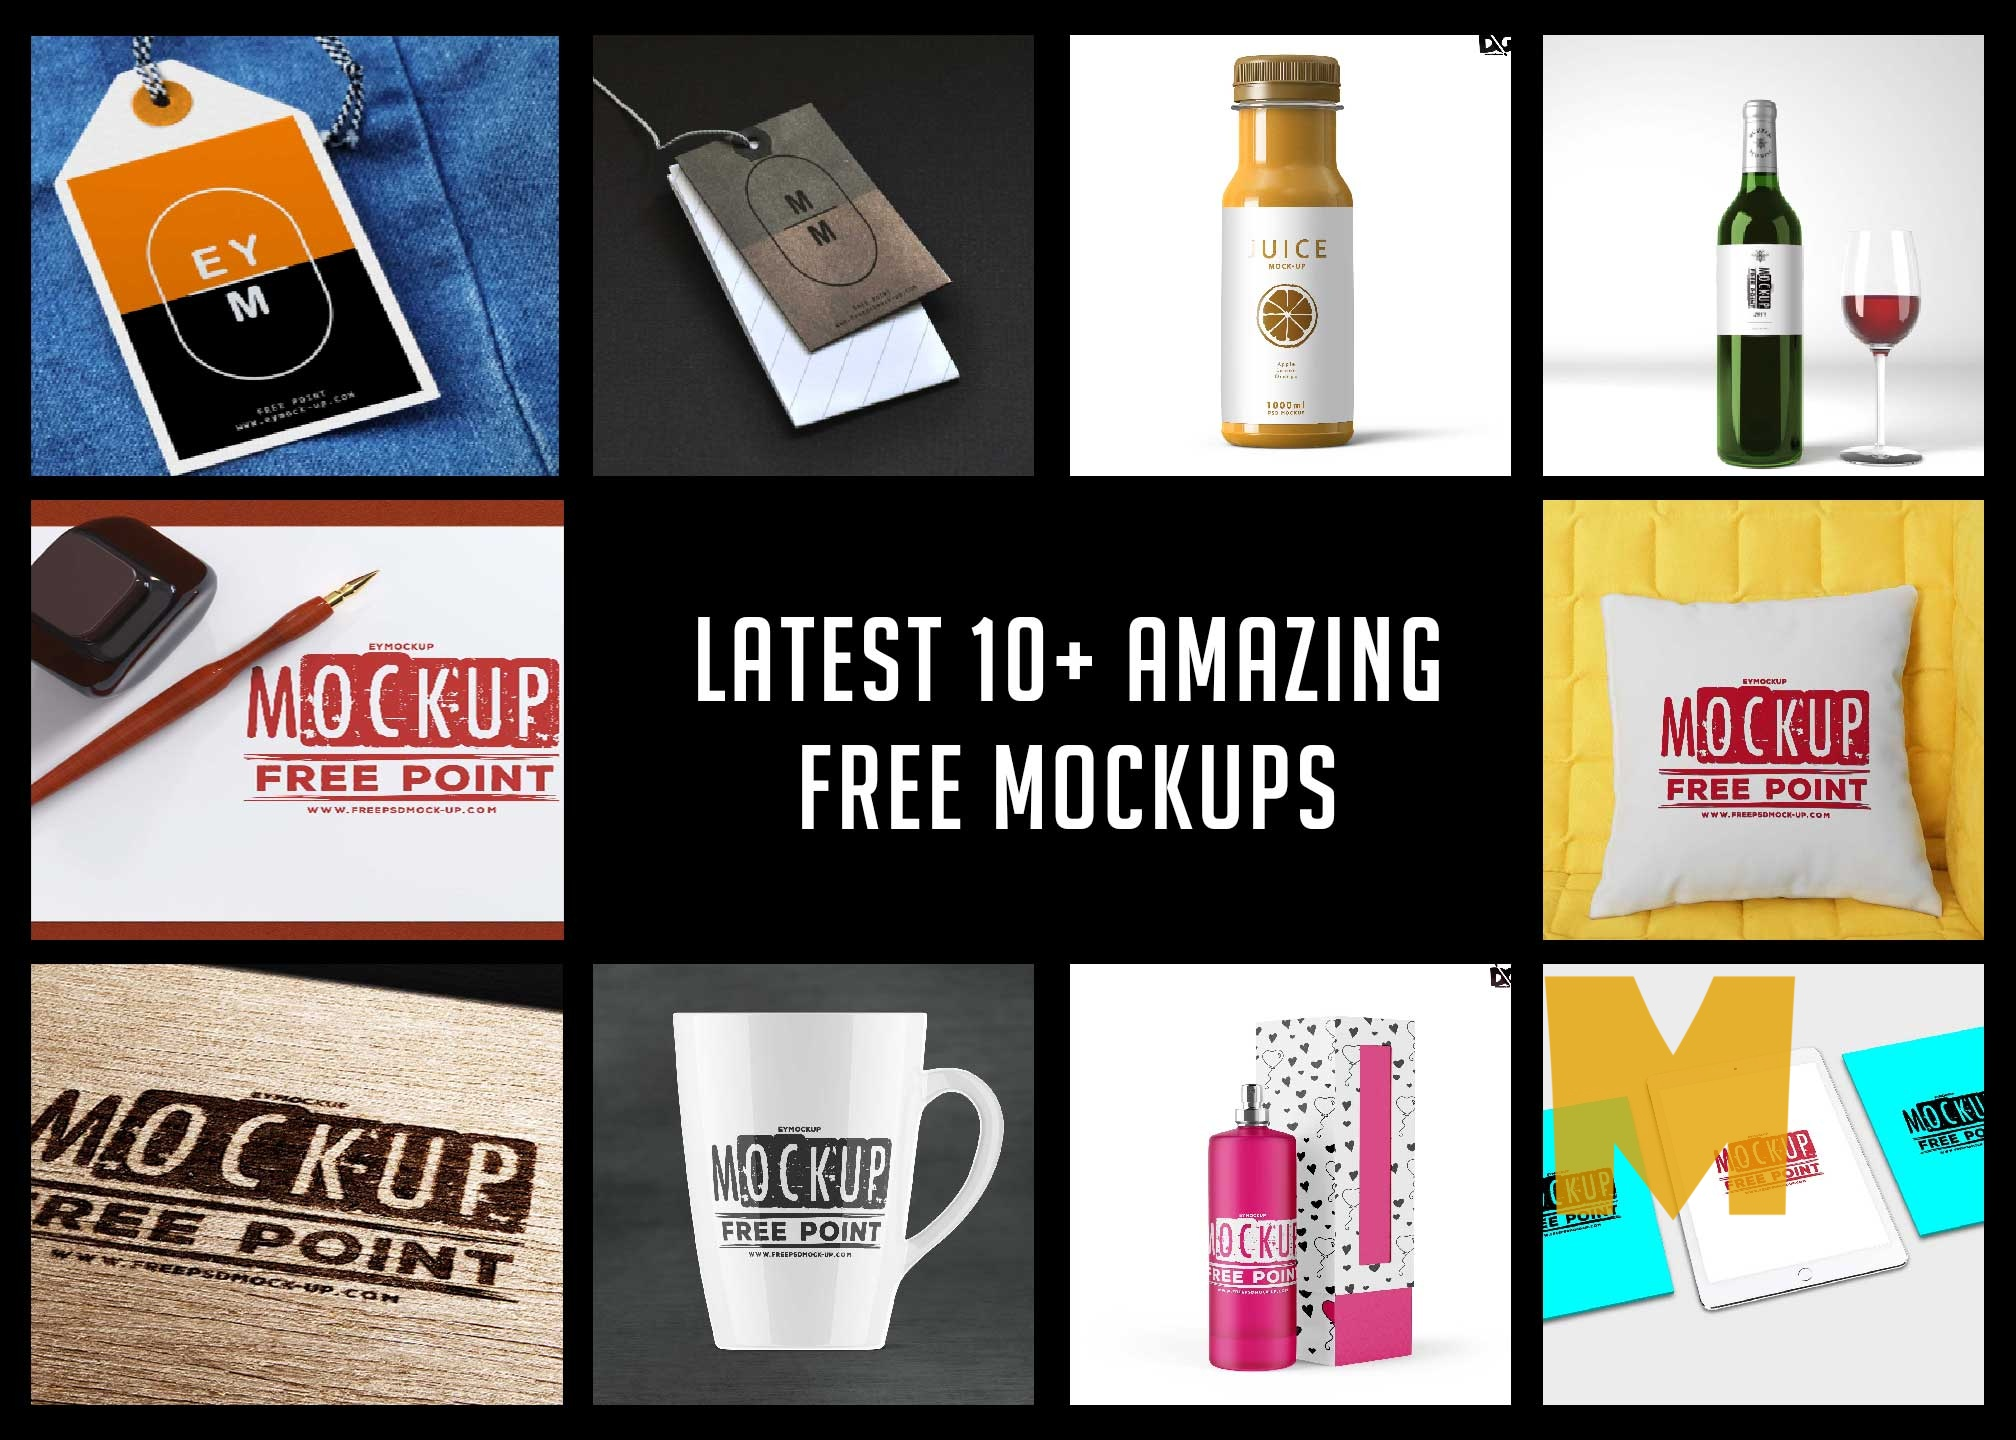 Latest 10+ Amazing Free Mockups